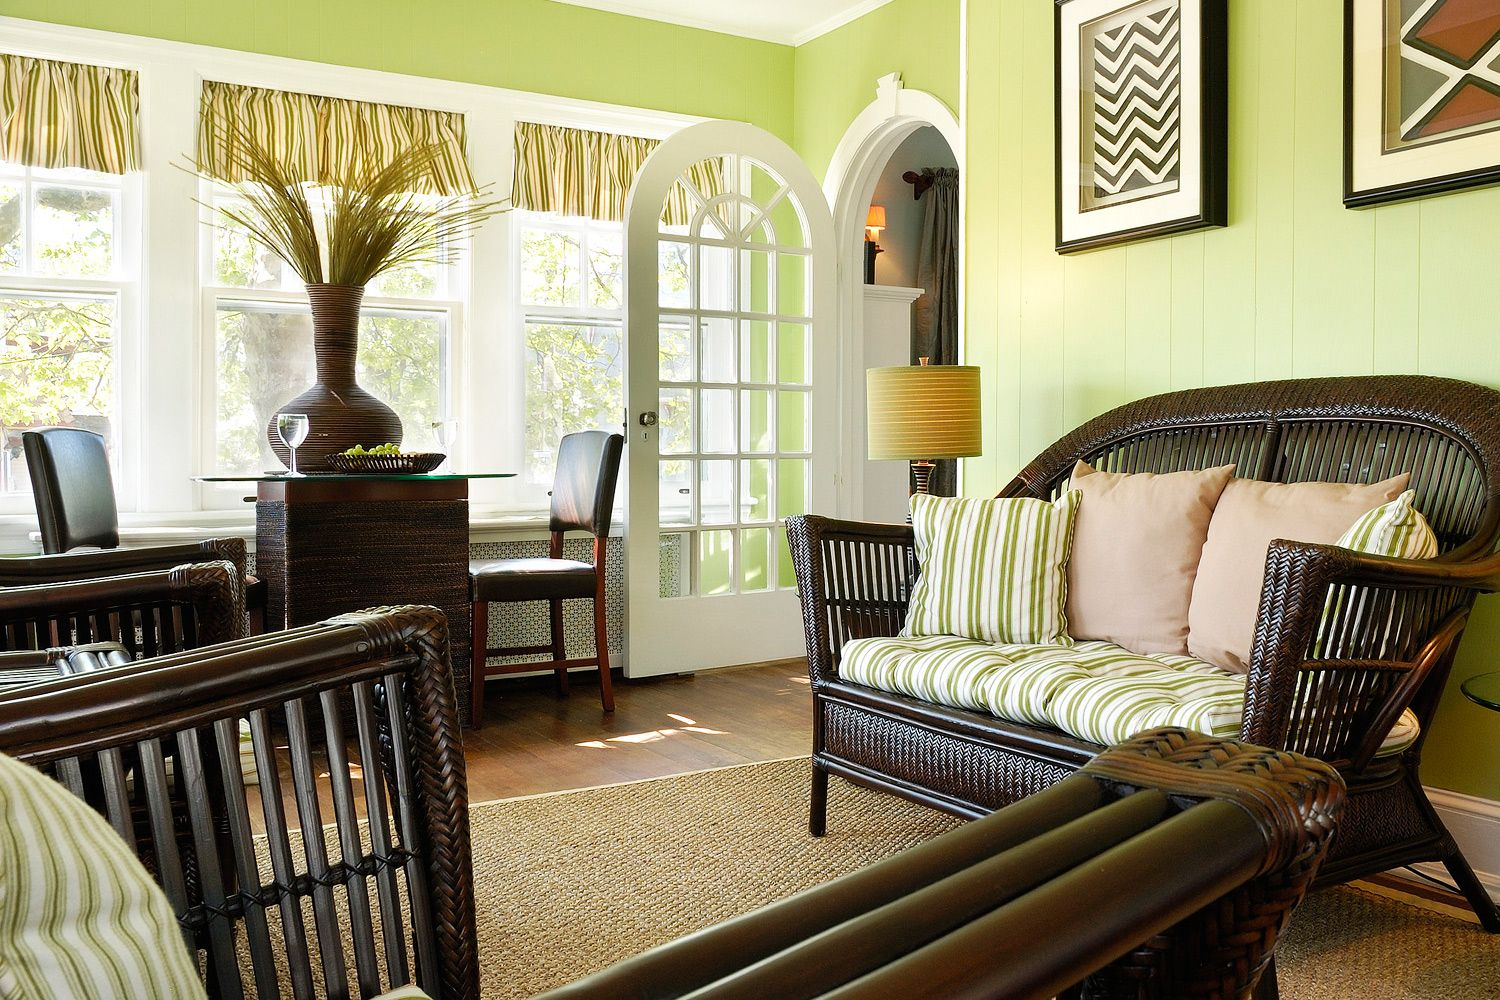 Cape May Bed and Breakfast NJ, Akwaaba at Buttonwood Manor